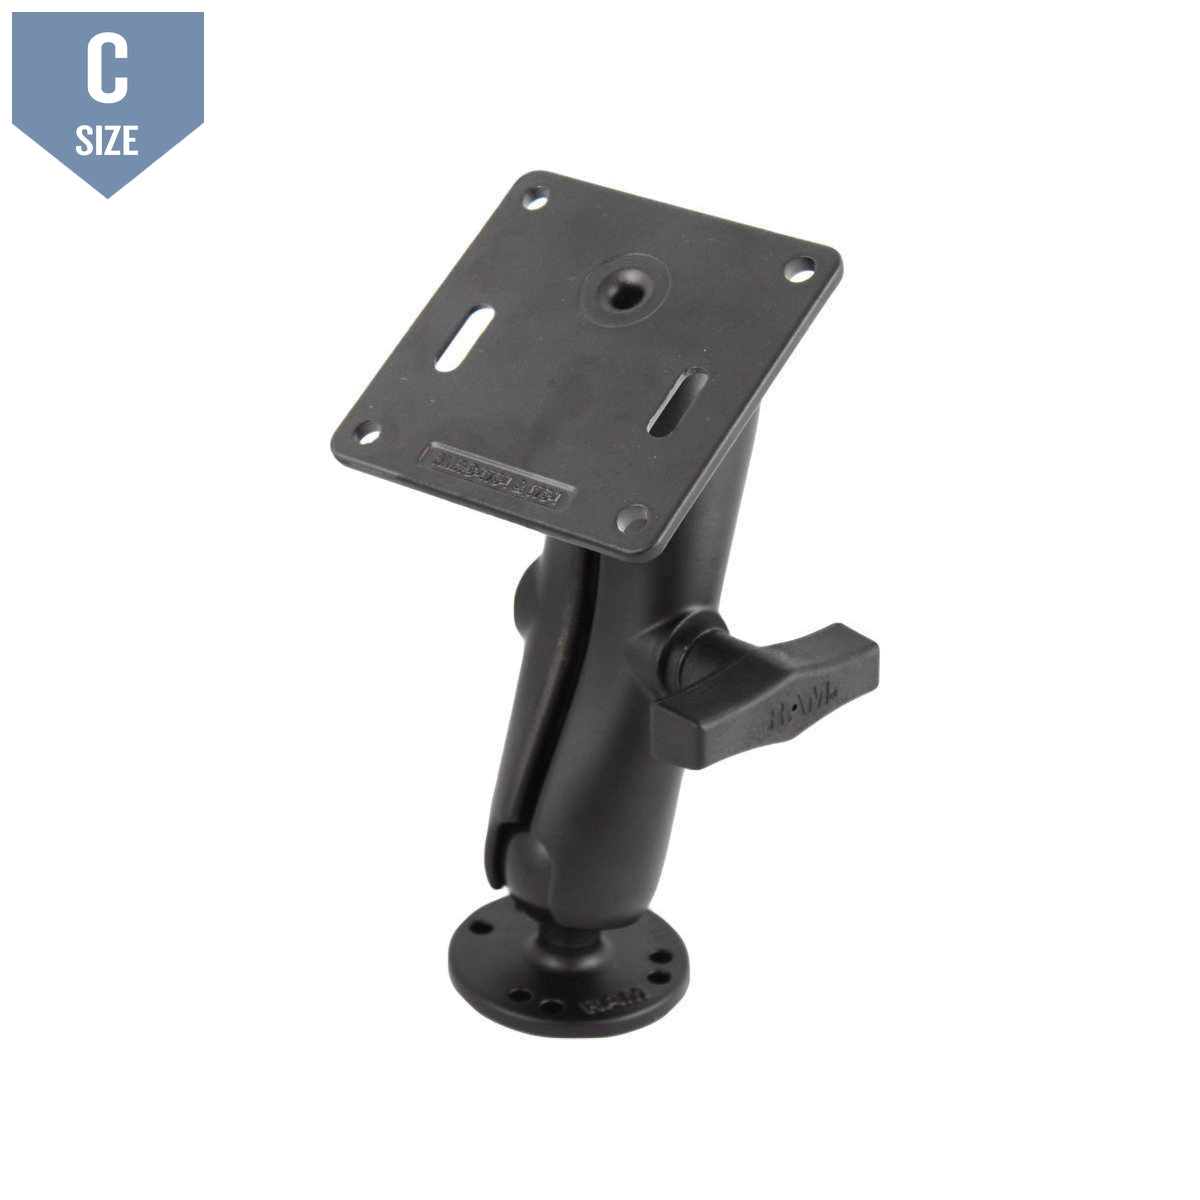 RAM 75x75mm VESA Plate & Double C Ball Mount (RAM-101U-2461) - Modest Mounts